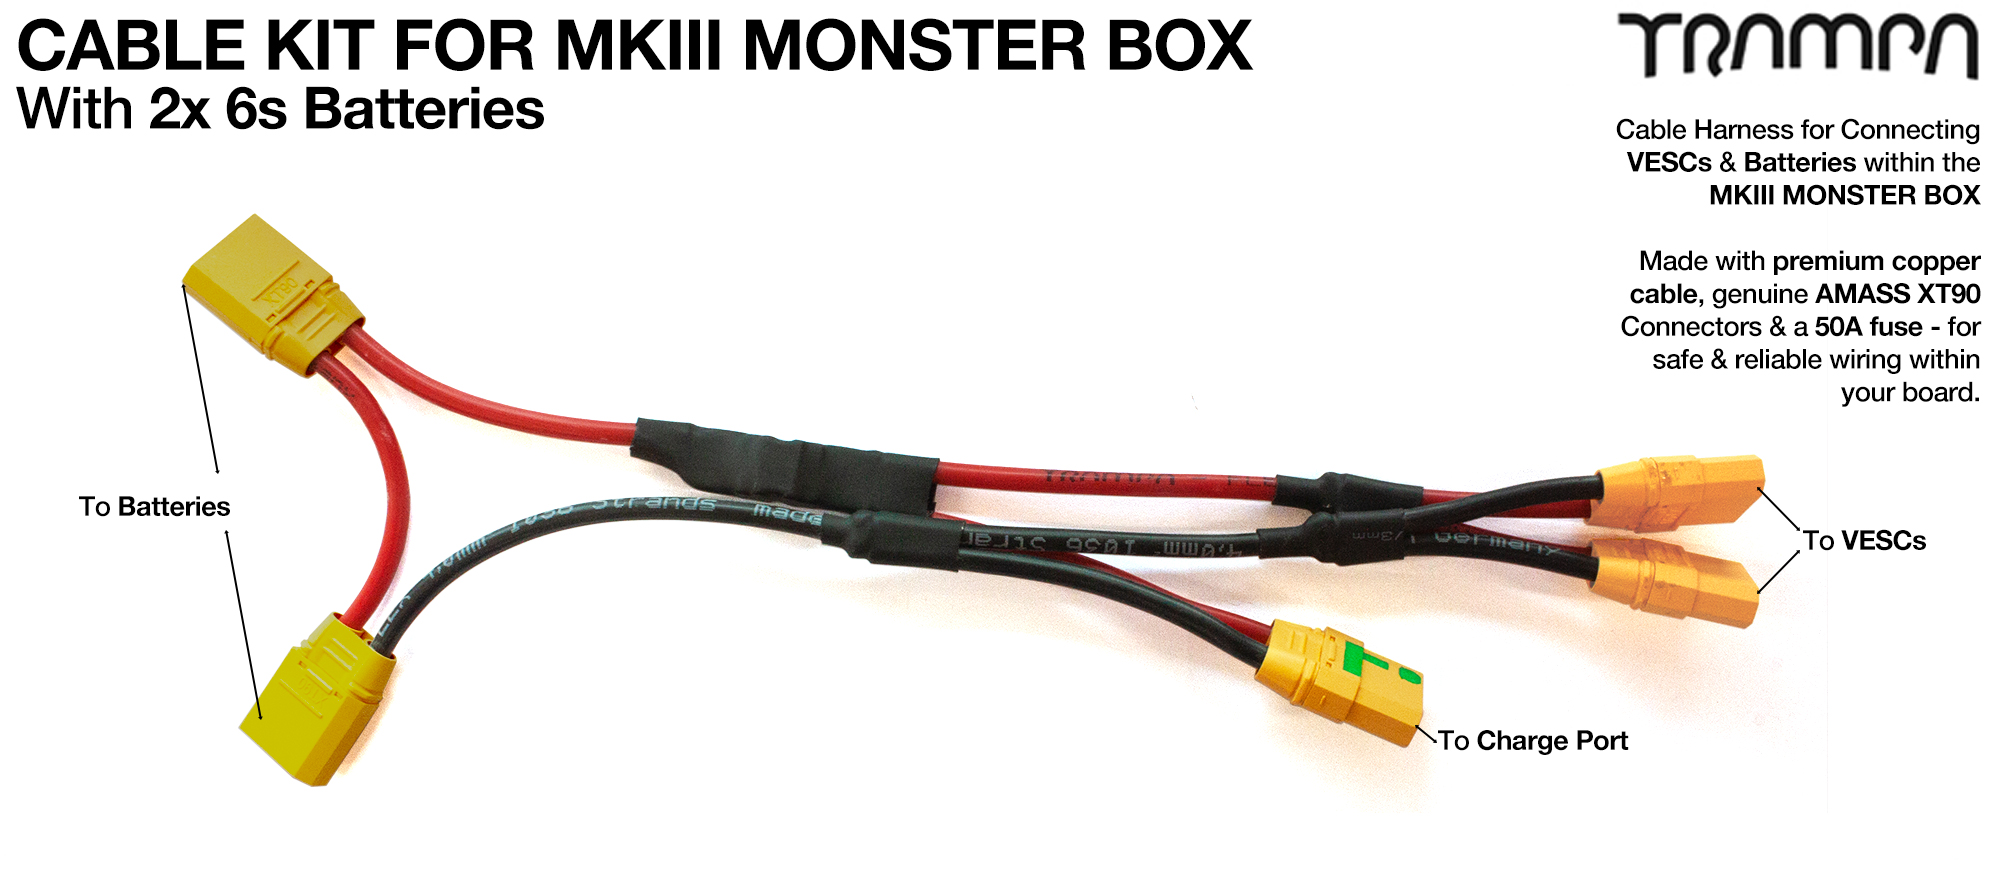 MkIII Monster Box cable kit for TWIN Motor using 2x 20000 mAh cells